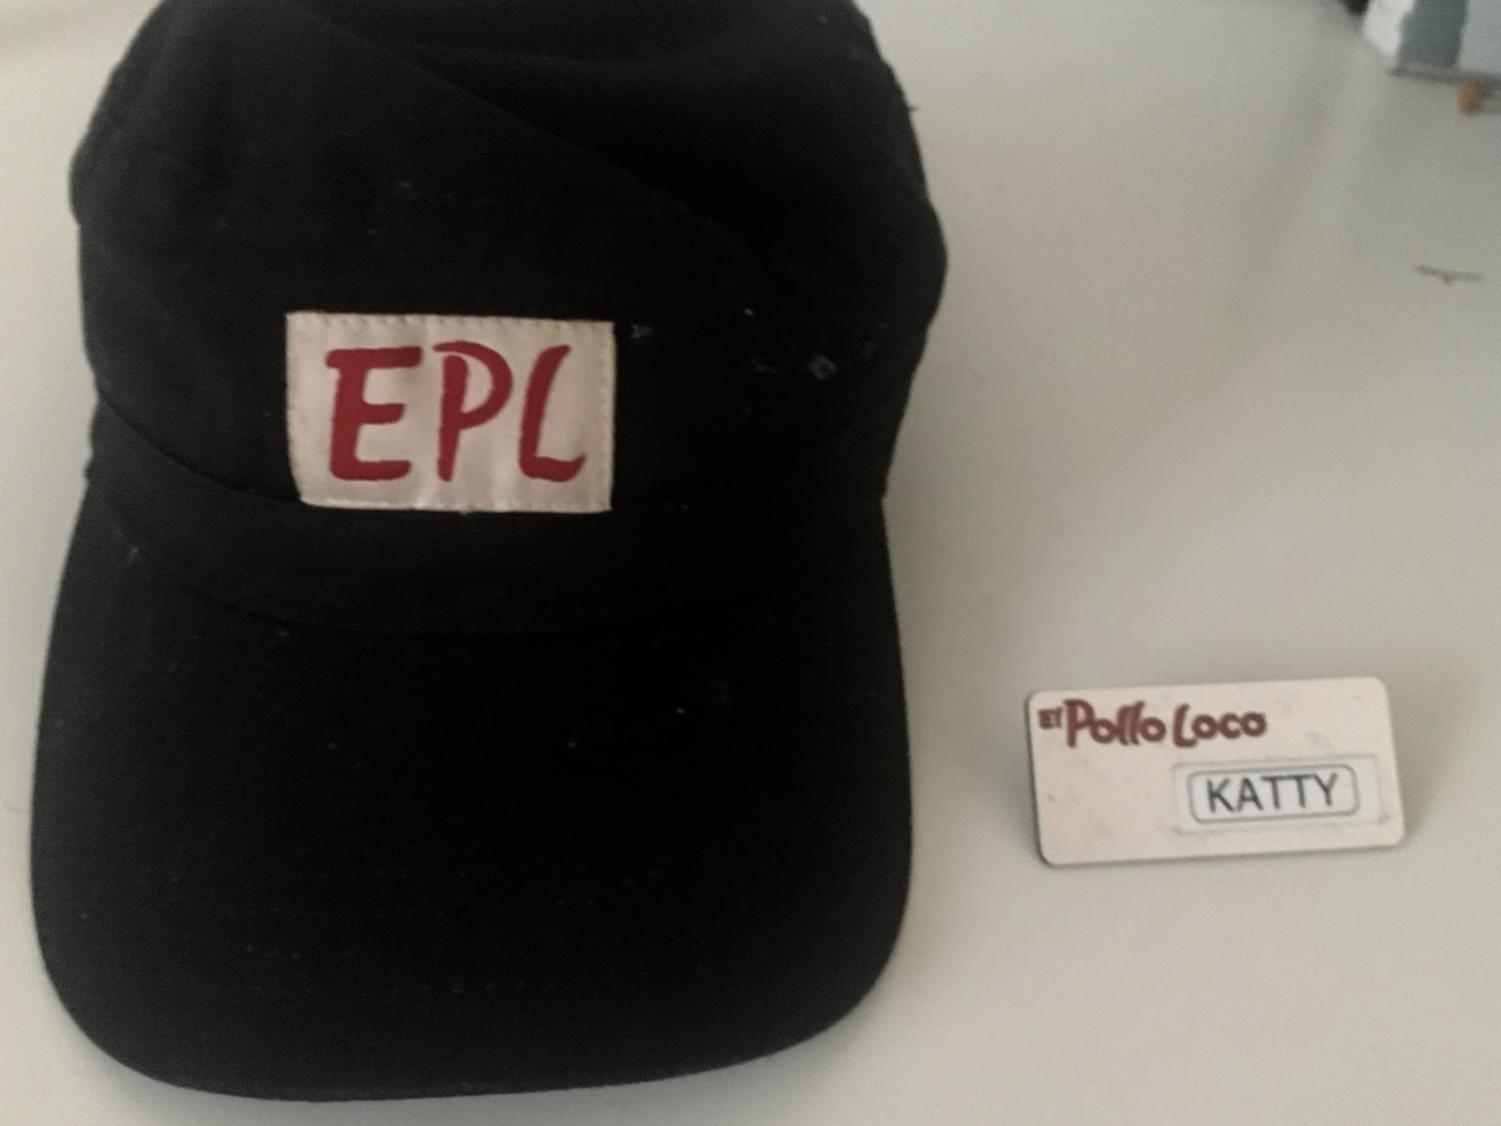 Reporter Katty Gallegos shows part of her El Pollo Loco work uniform on January 31, 2019.